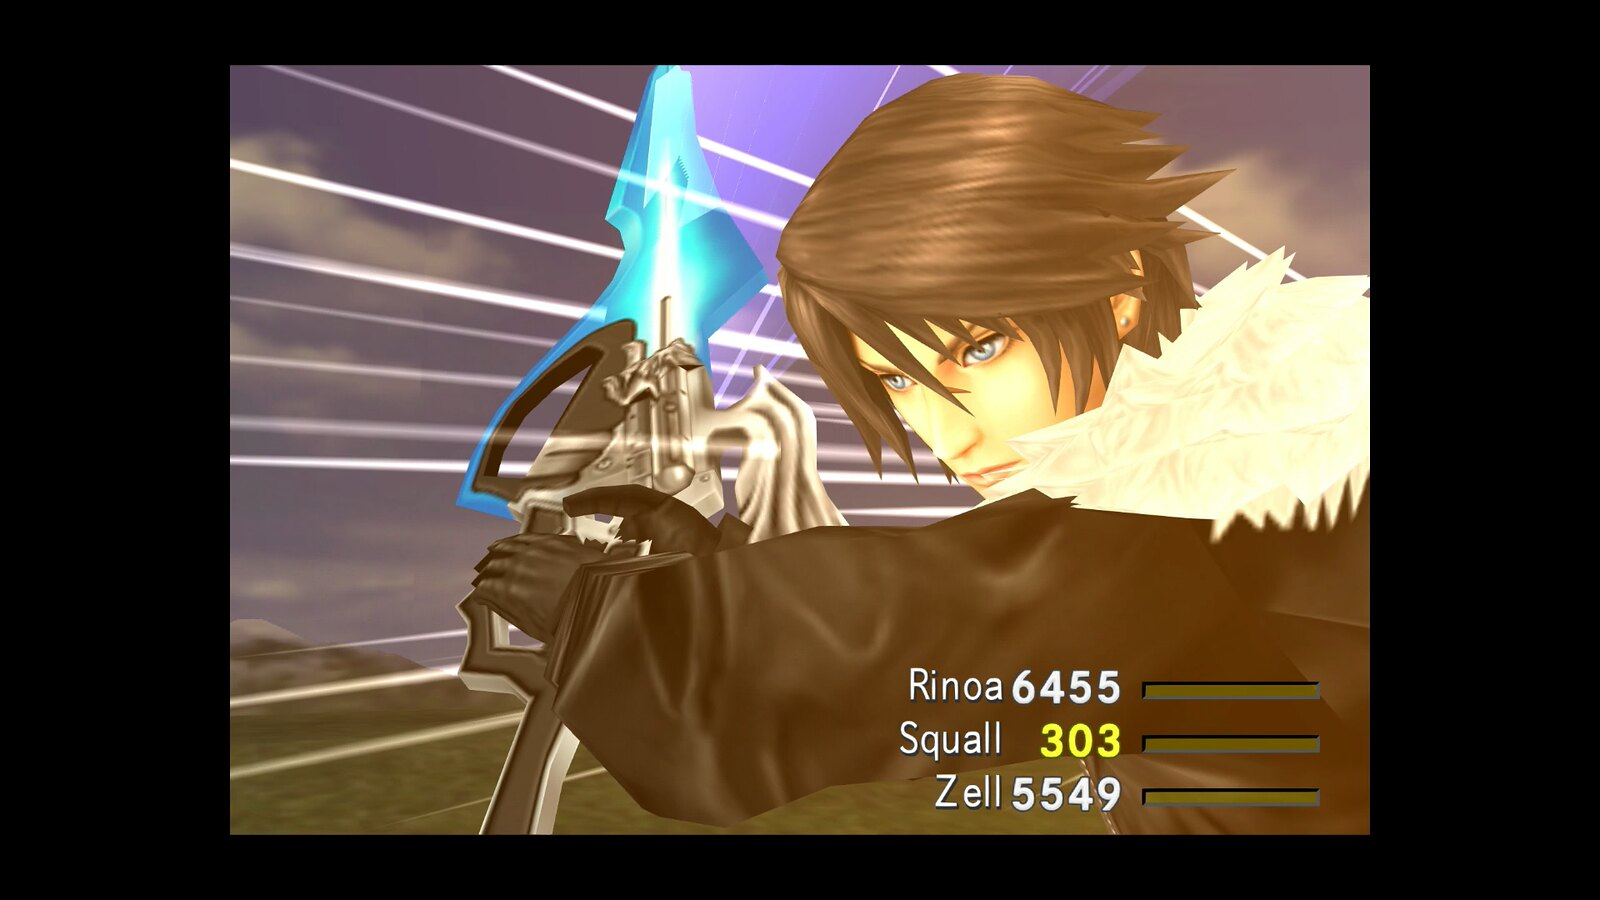 Final Fantasy VIII Remastered coming to Switch on September 3rd, 2019